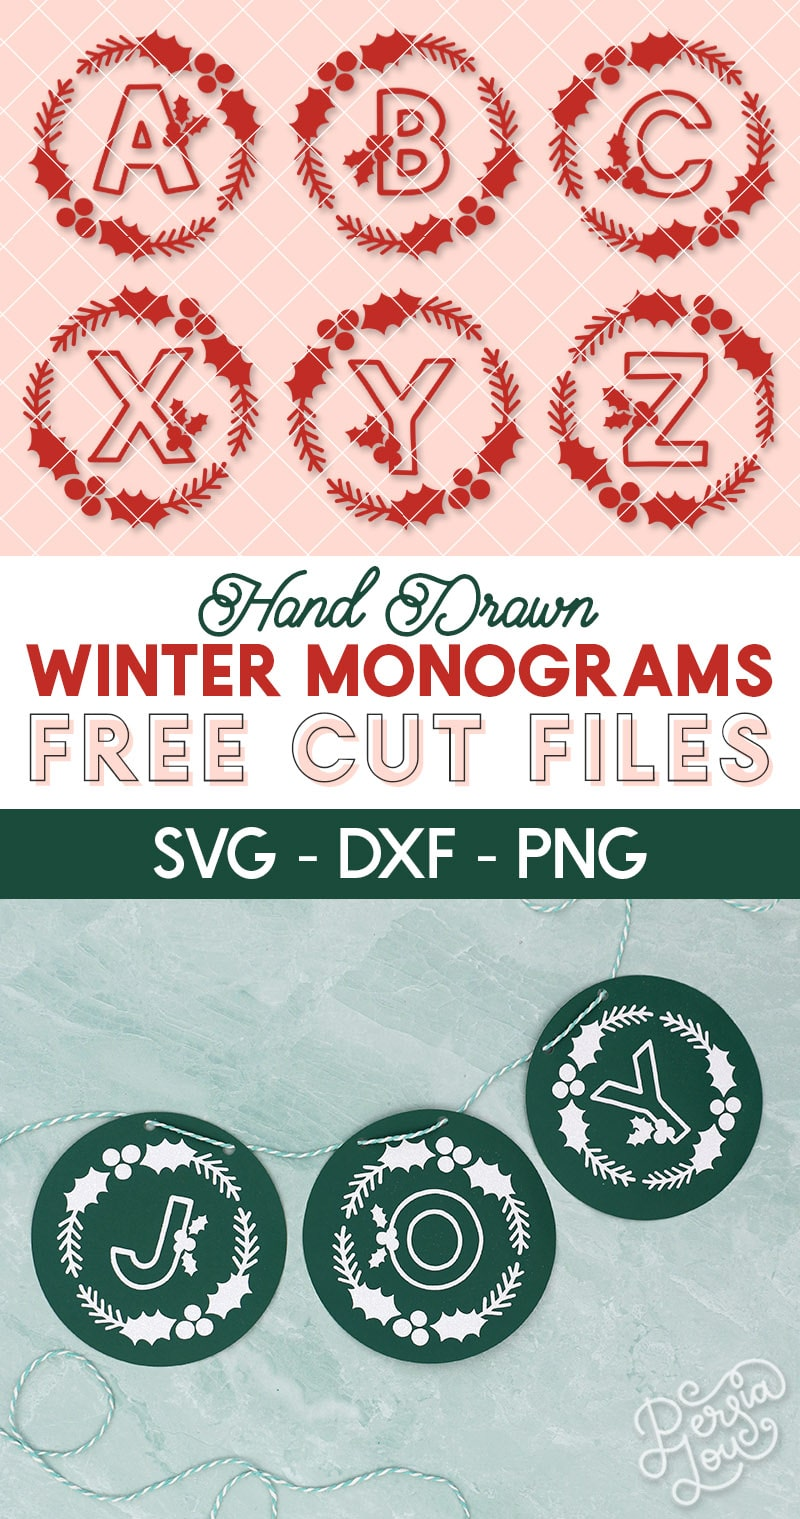 free hand drawn winter monograms free cut files in svg dxf and png file formats